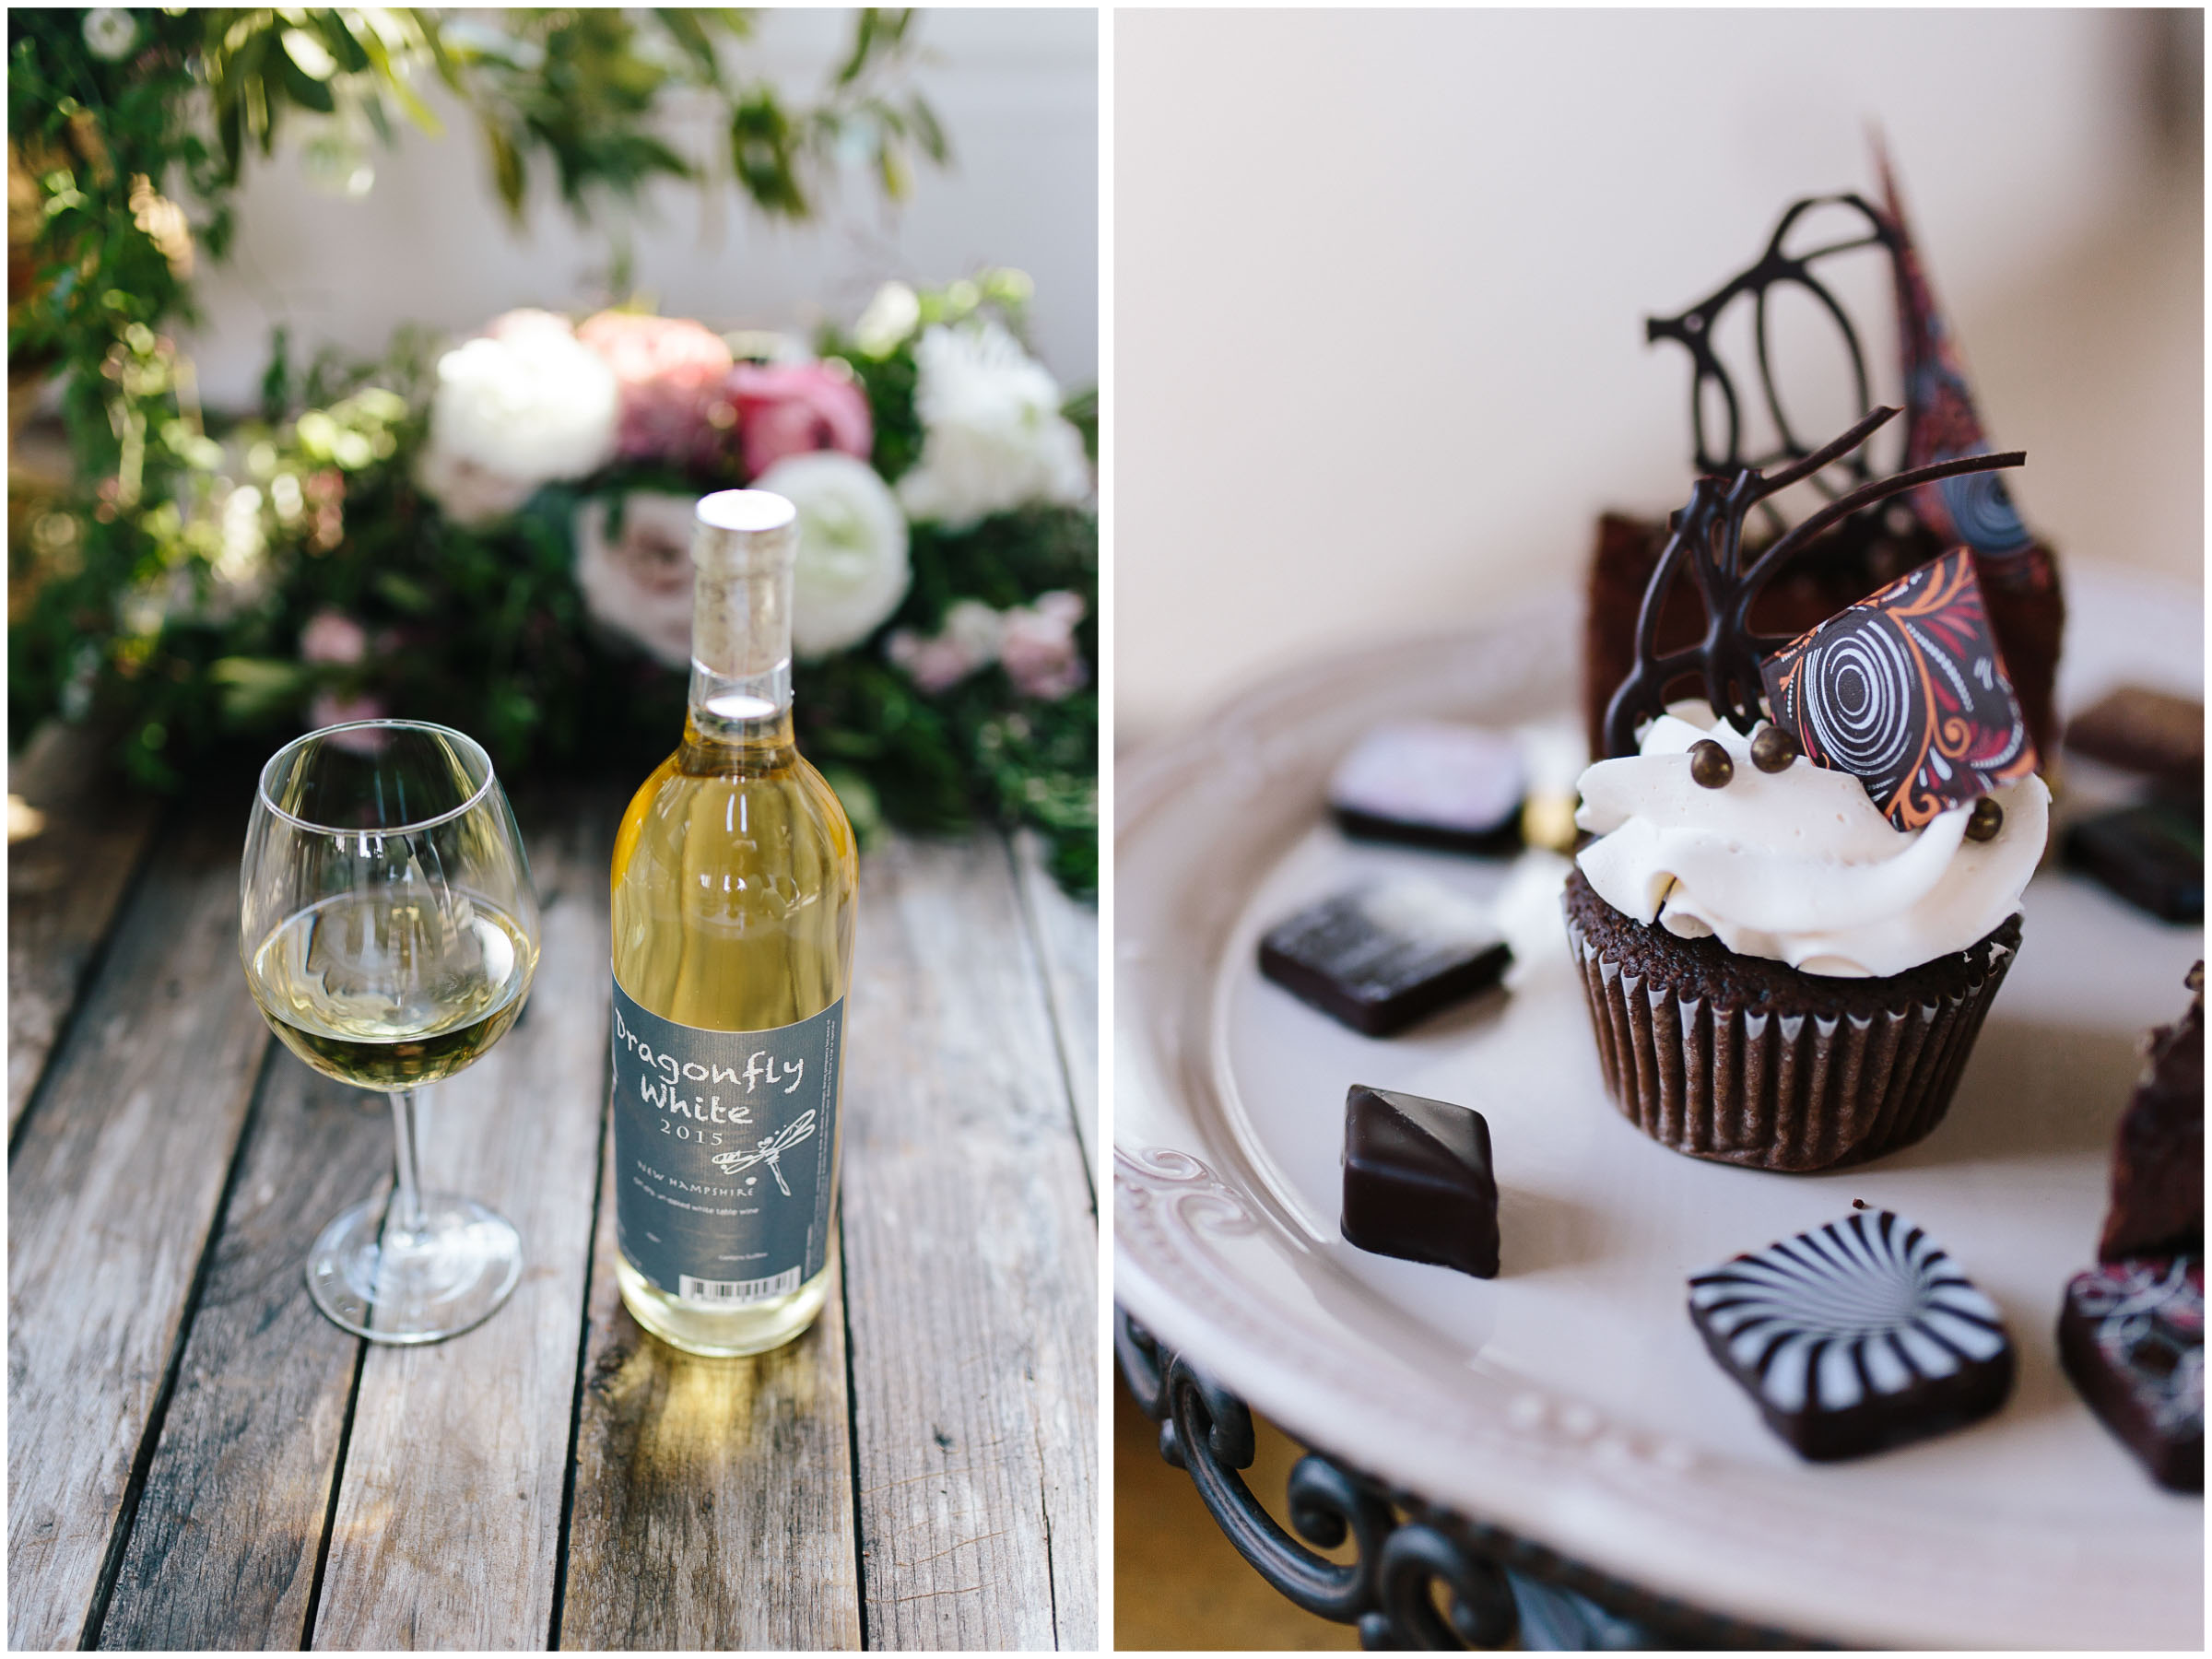 Intimate and romantic styled wedding photography in Lee, Massachusetts in the Berkshires - Appolo wine and chocolates